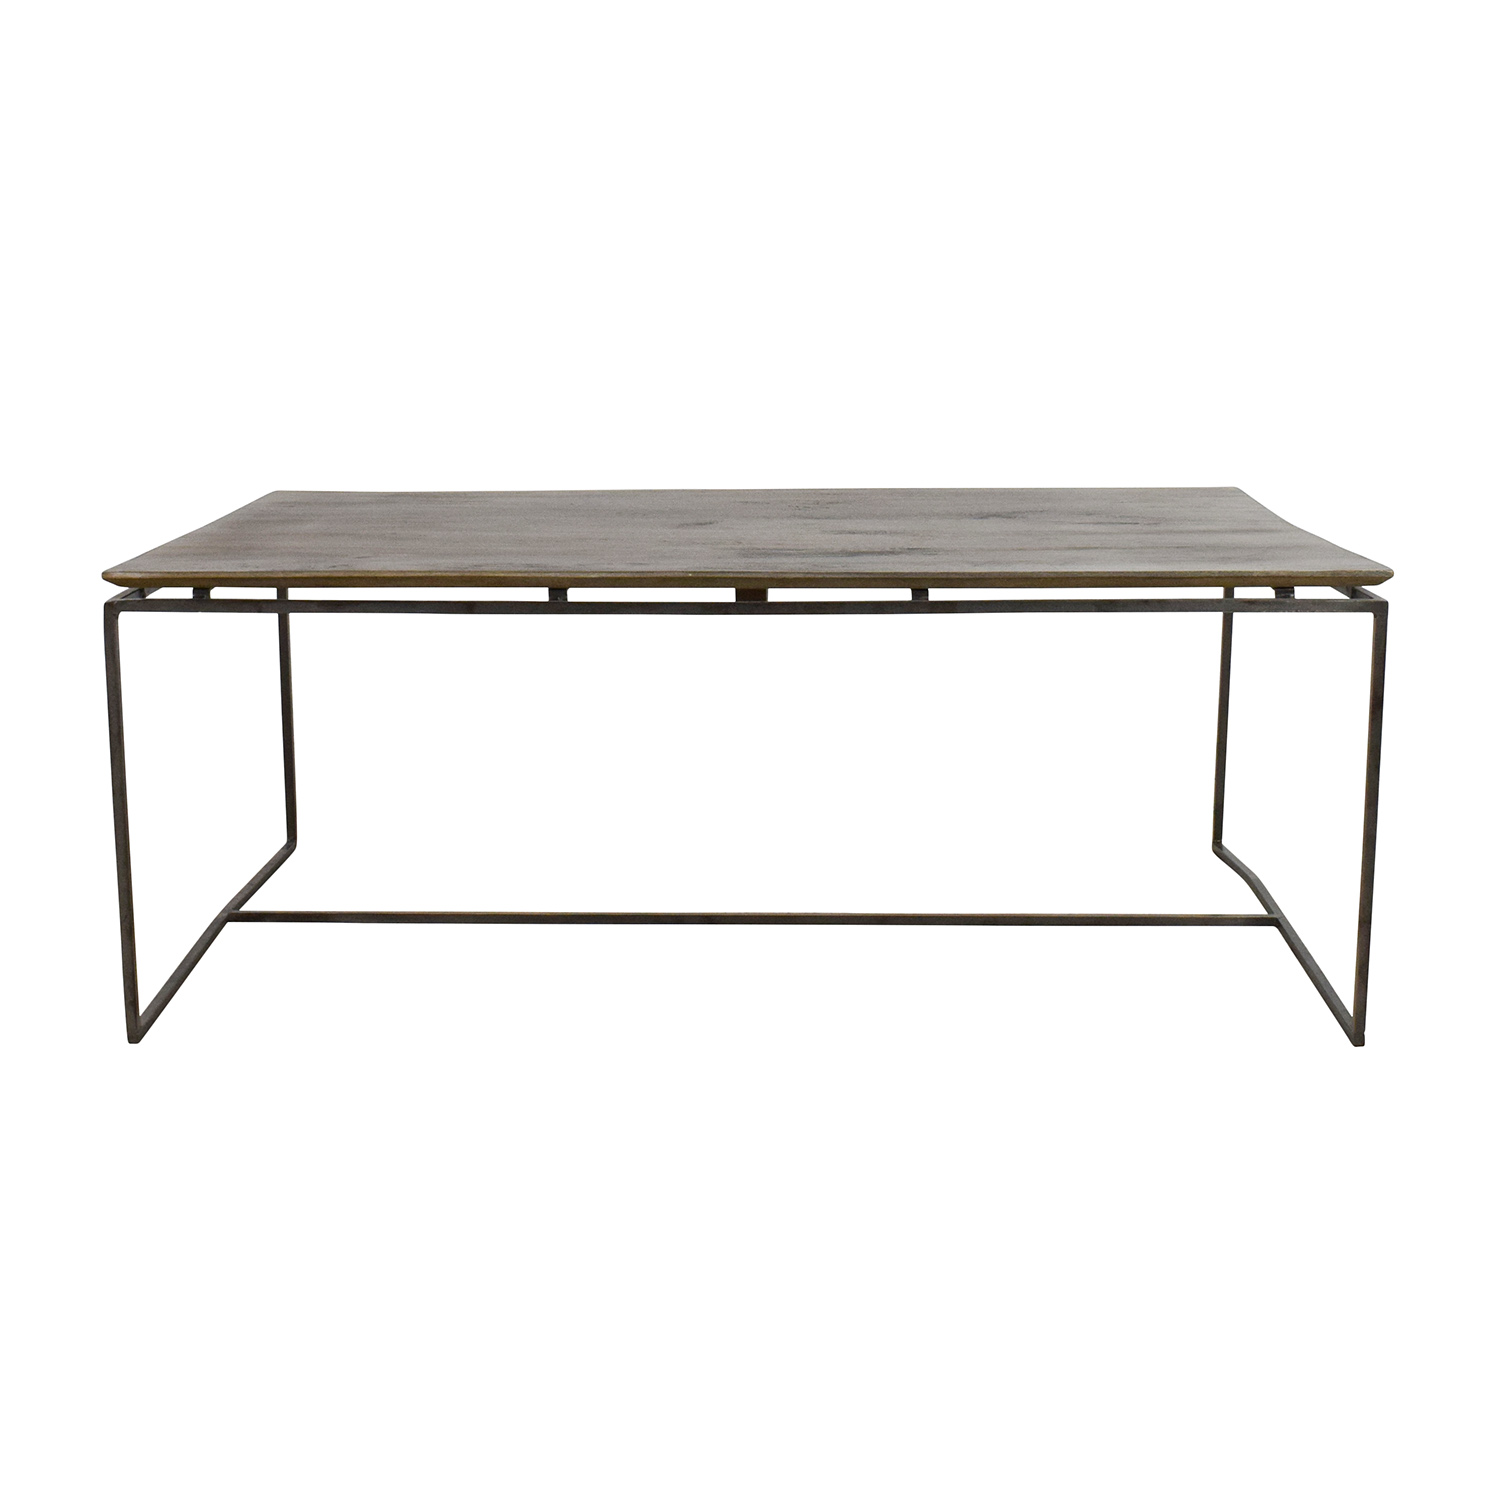 Nadeau Nadeau Wood and Iron Coffee Table second hand